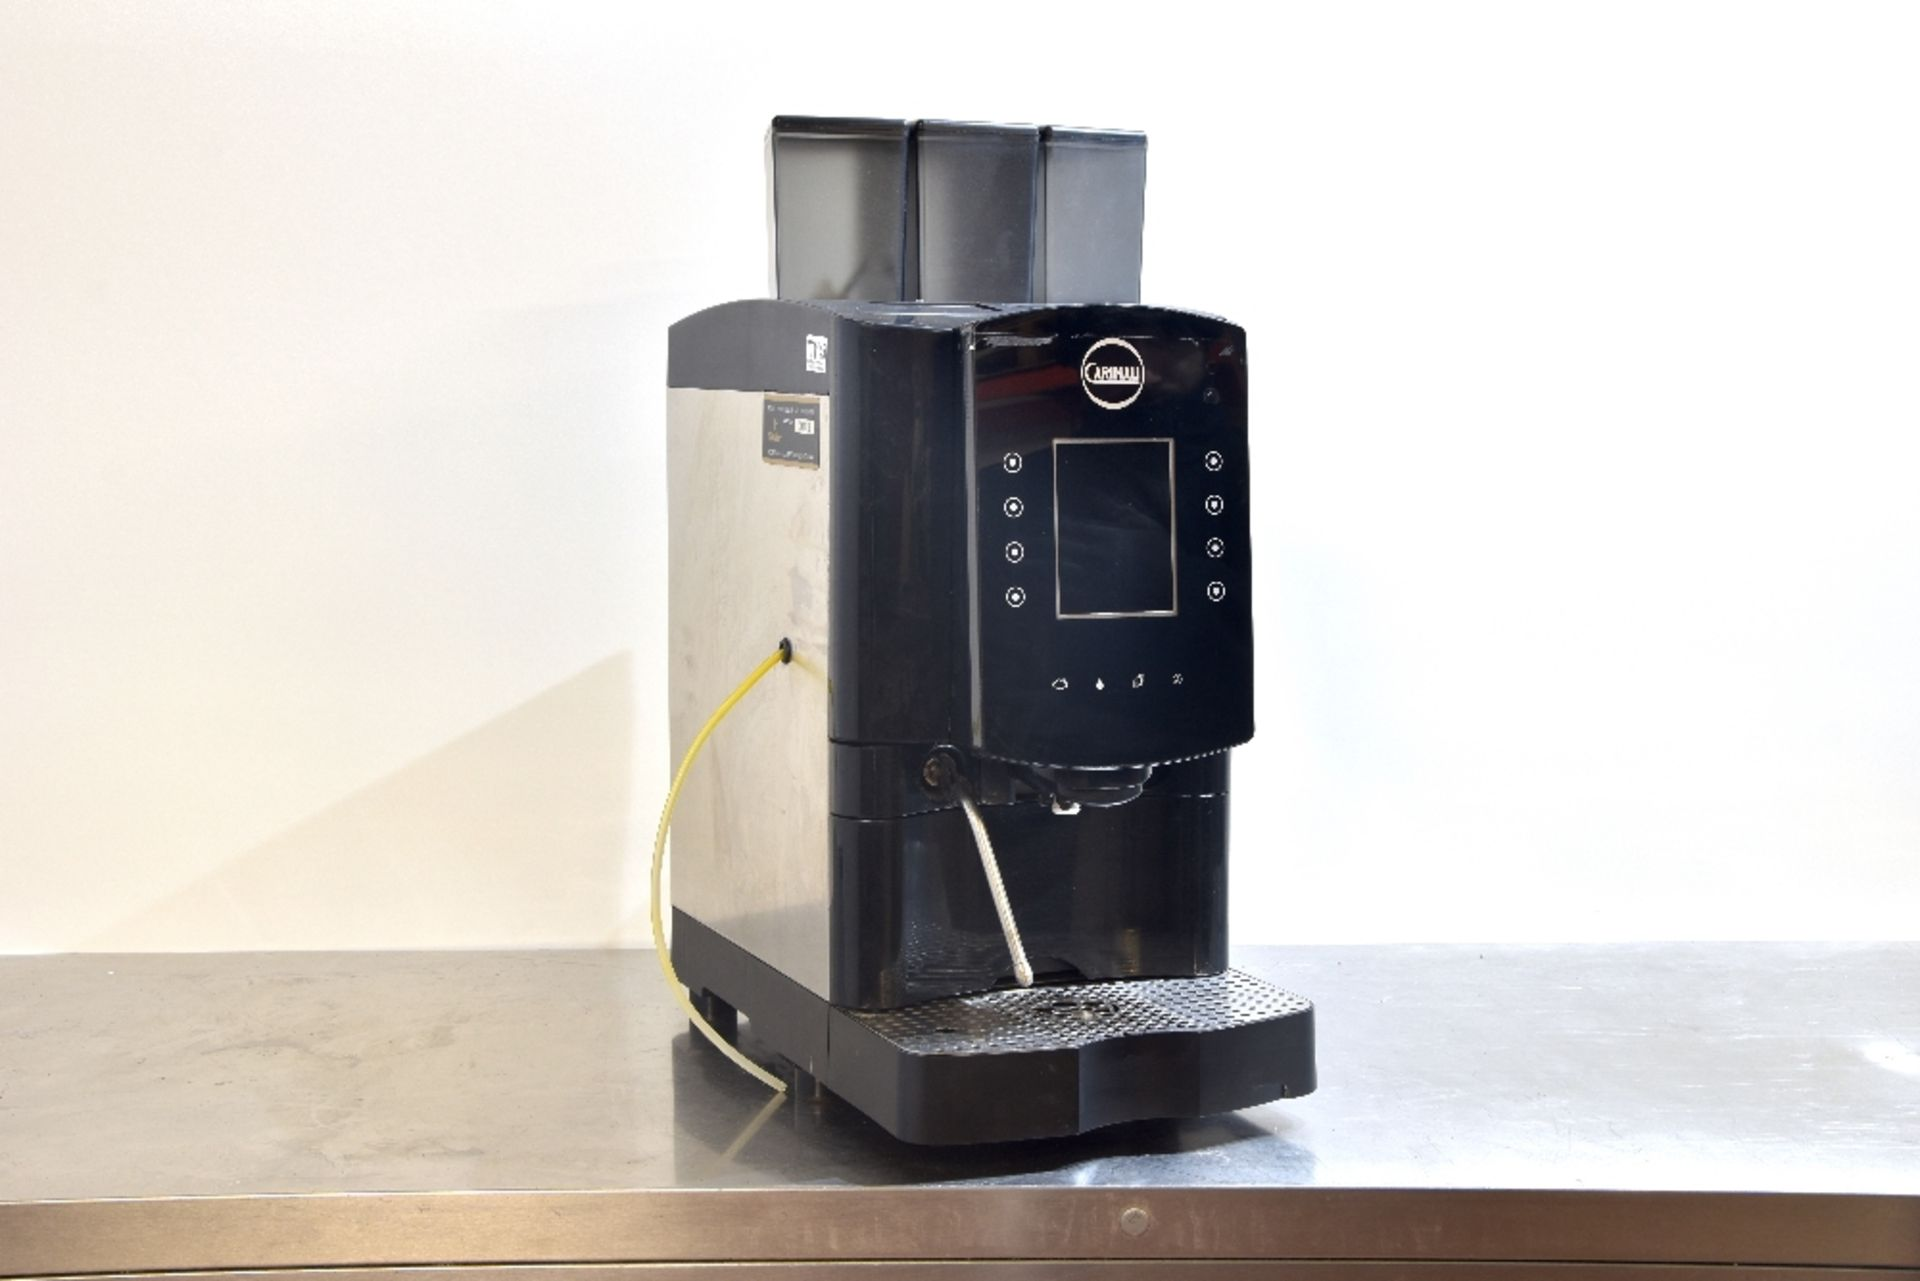 Lot 34 - Carimali Solar Touch Drinks Machine – Bean to cup Coffee + Chocolate & Other Drinks The Carimali